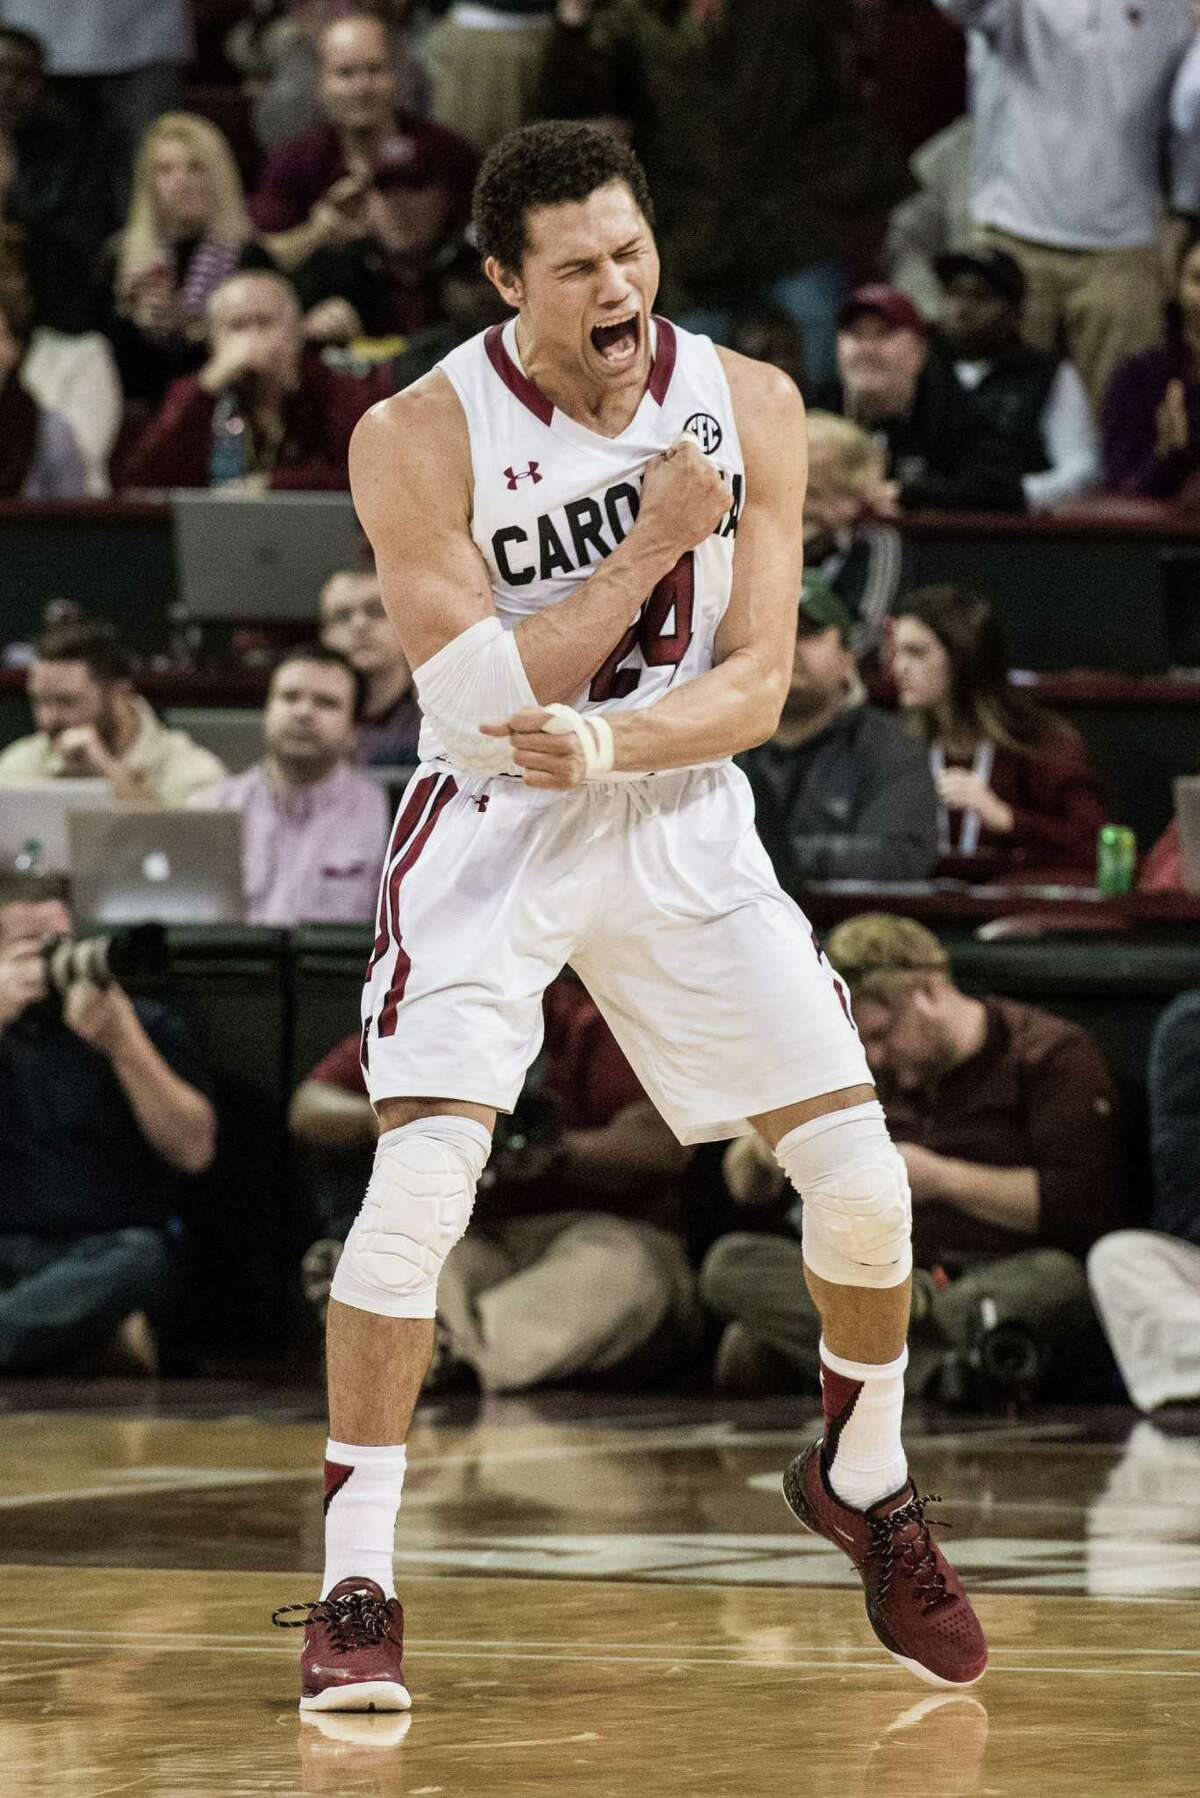 Four turnaround seasons3. South Carolina Last year, the Gamecocks finished just over .500 with a 17-15 record. This year, they remain one of three undefeated teams (along with Oklahoma and SMU). South Carolina will enter conference play on Tuesday, when it faces Auburn.